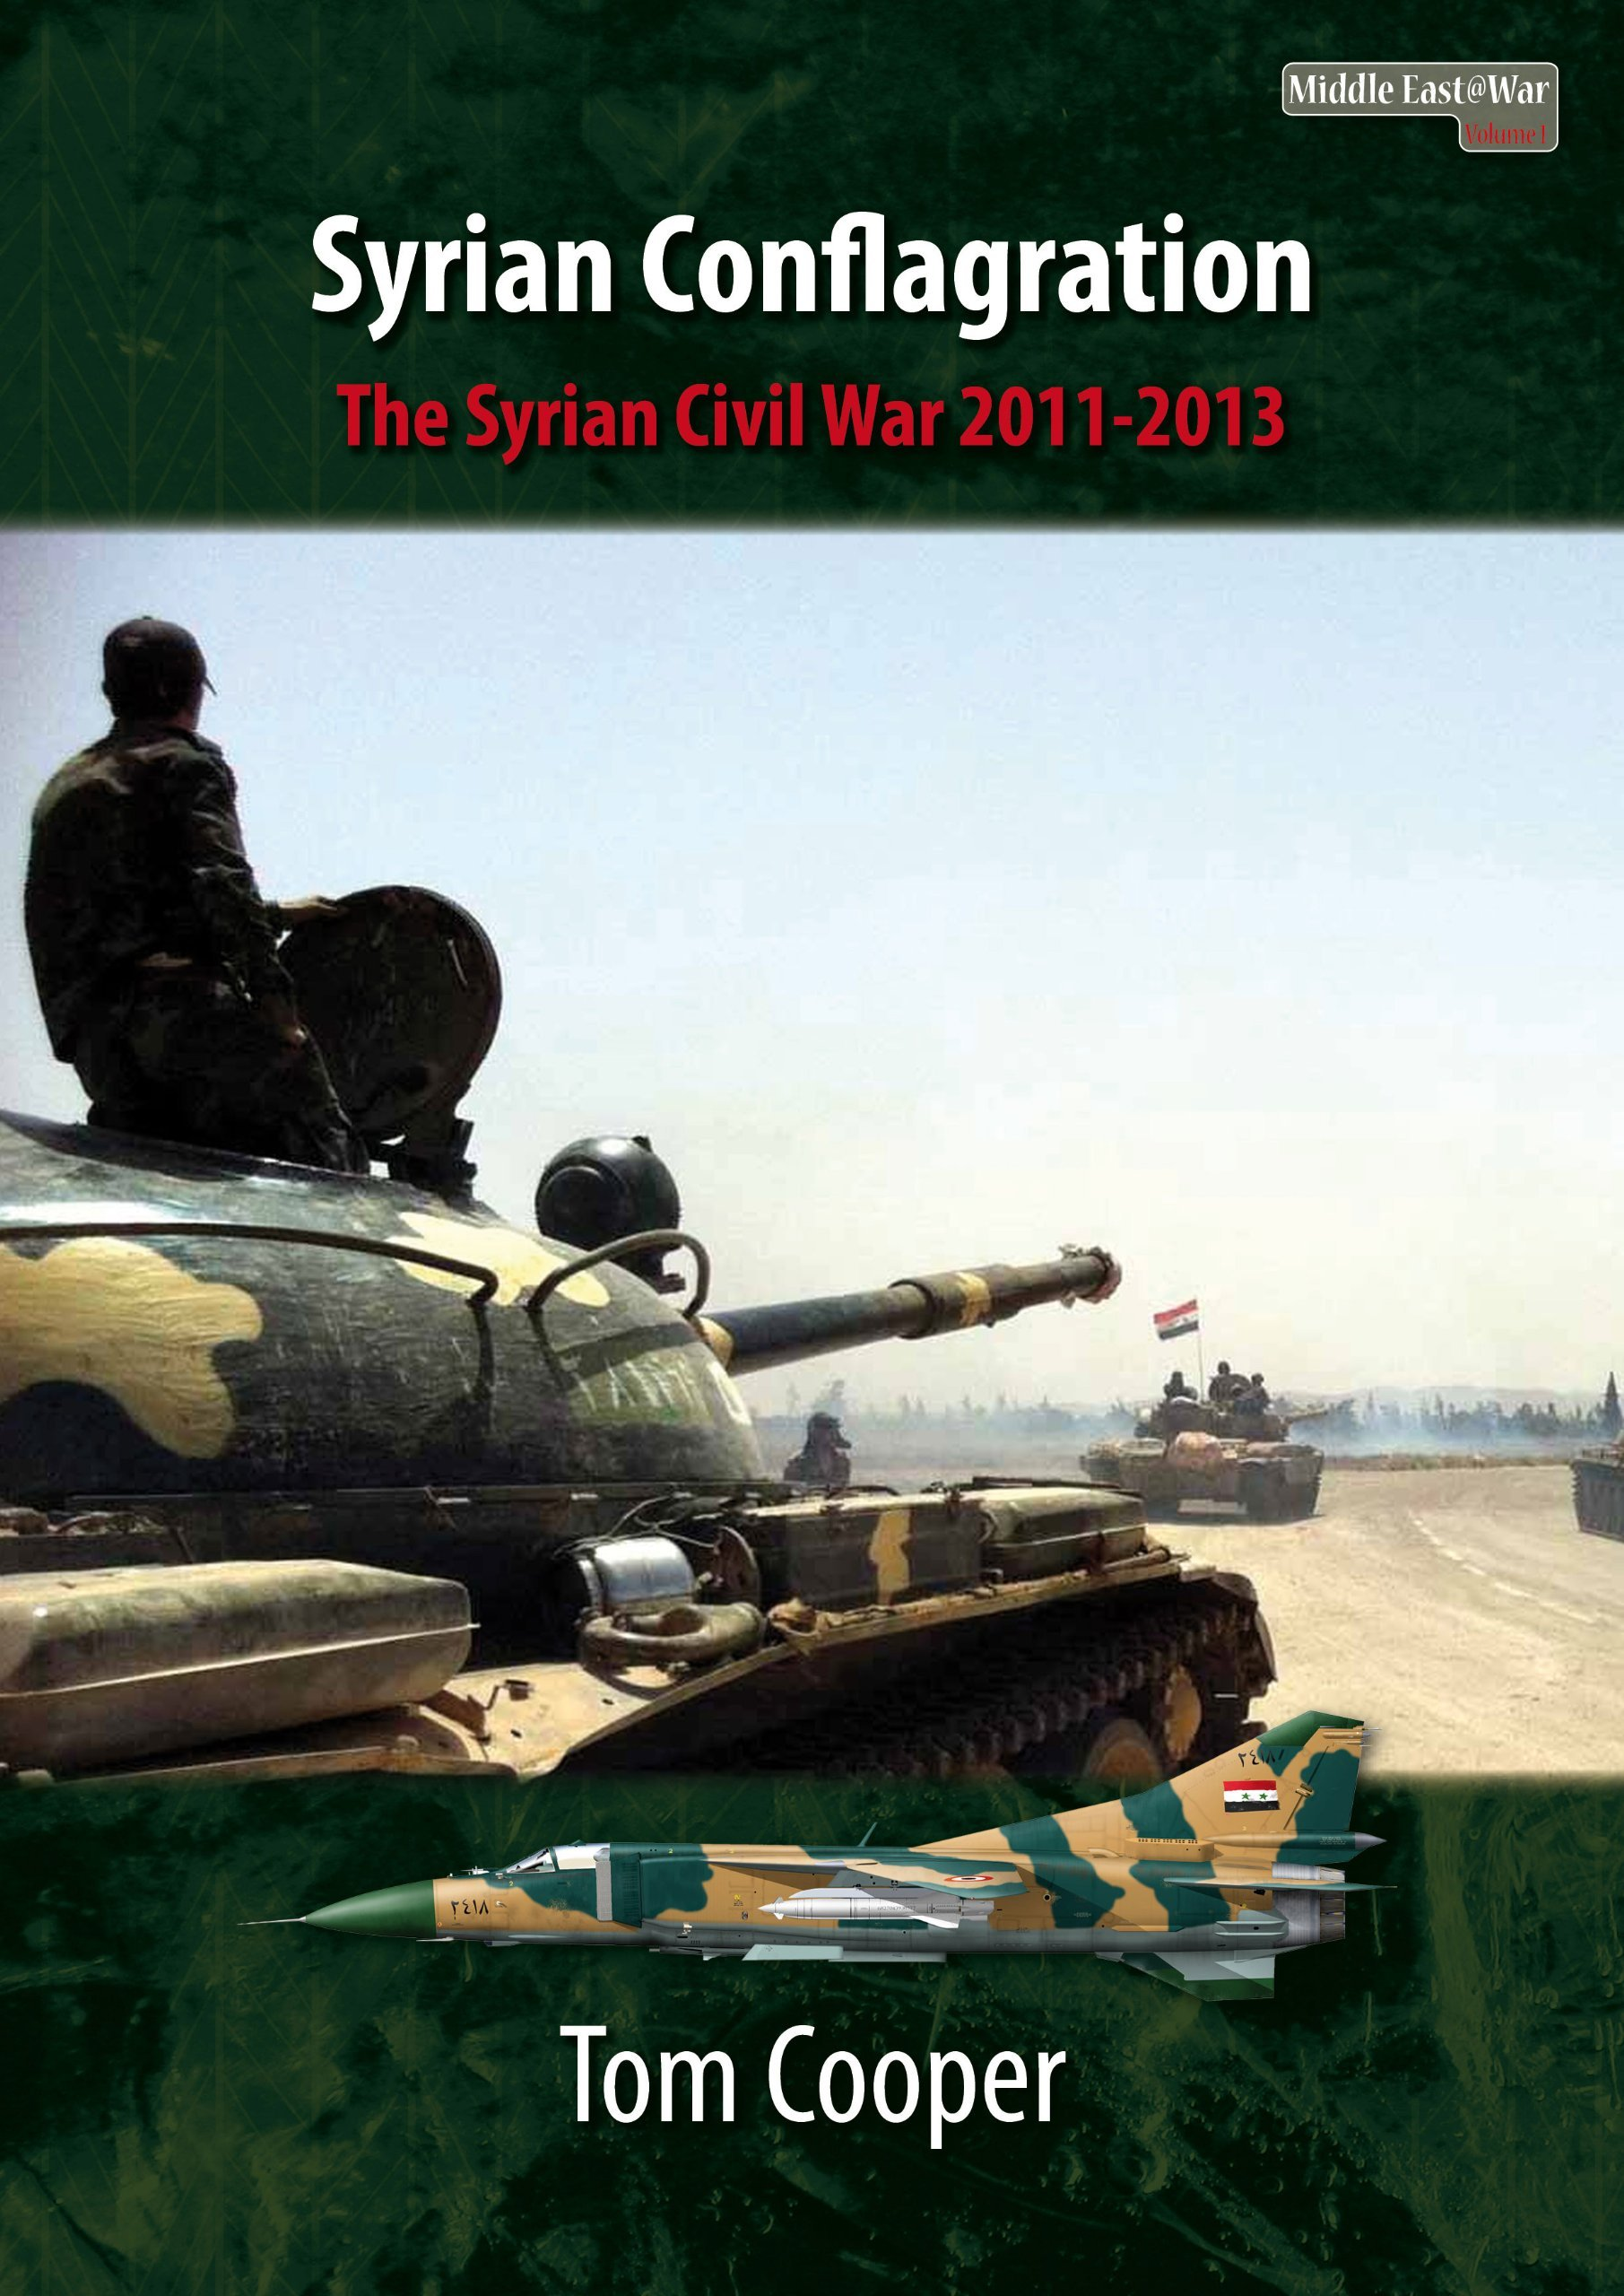 Syrian Conflagration: The Syrian Civil War, 2011-2013